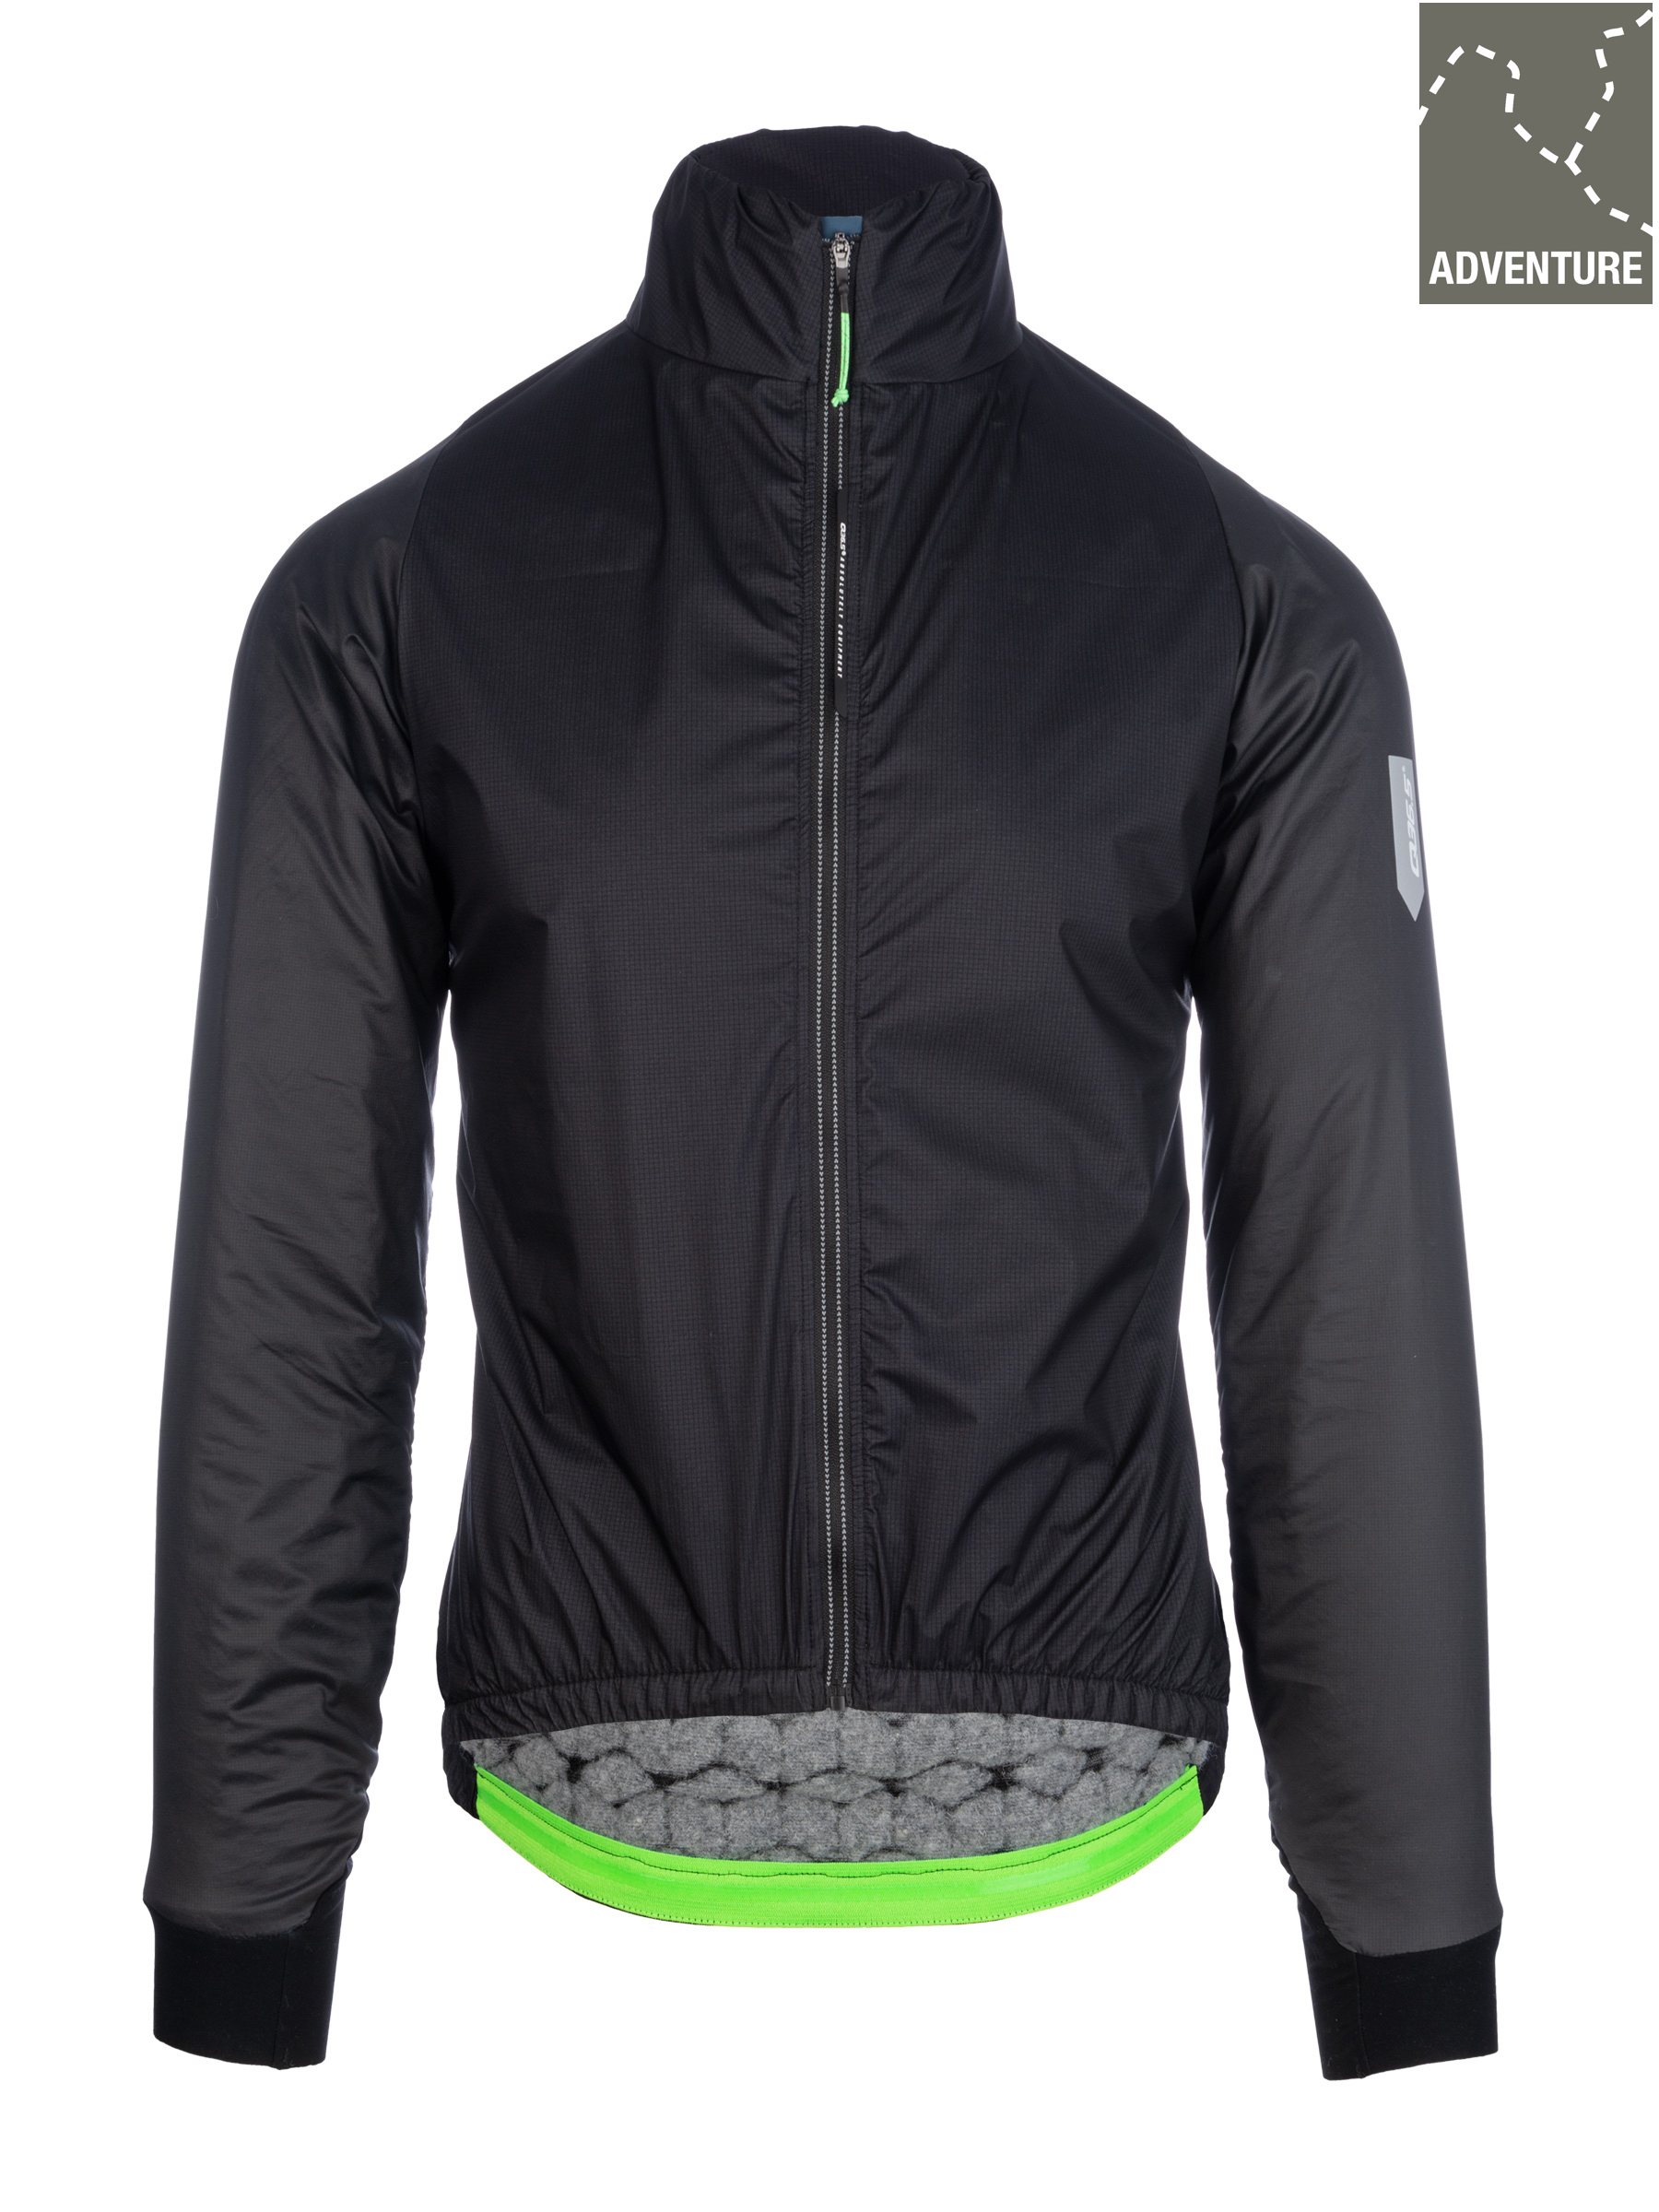 Mens adventure winter cycling jacket Q36.5 black - 062.2